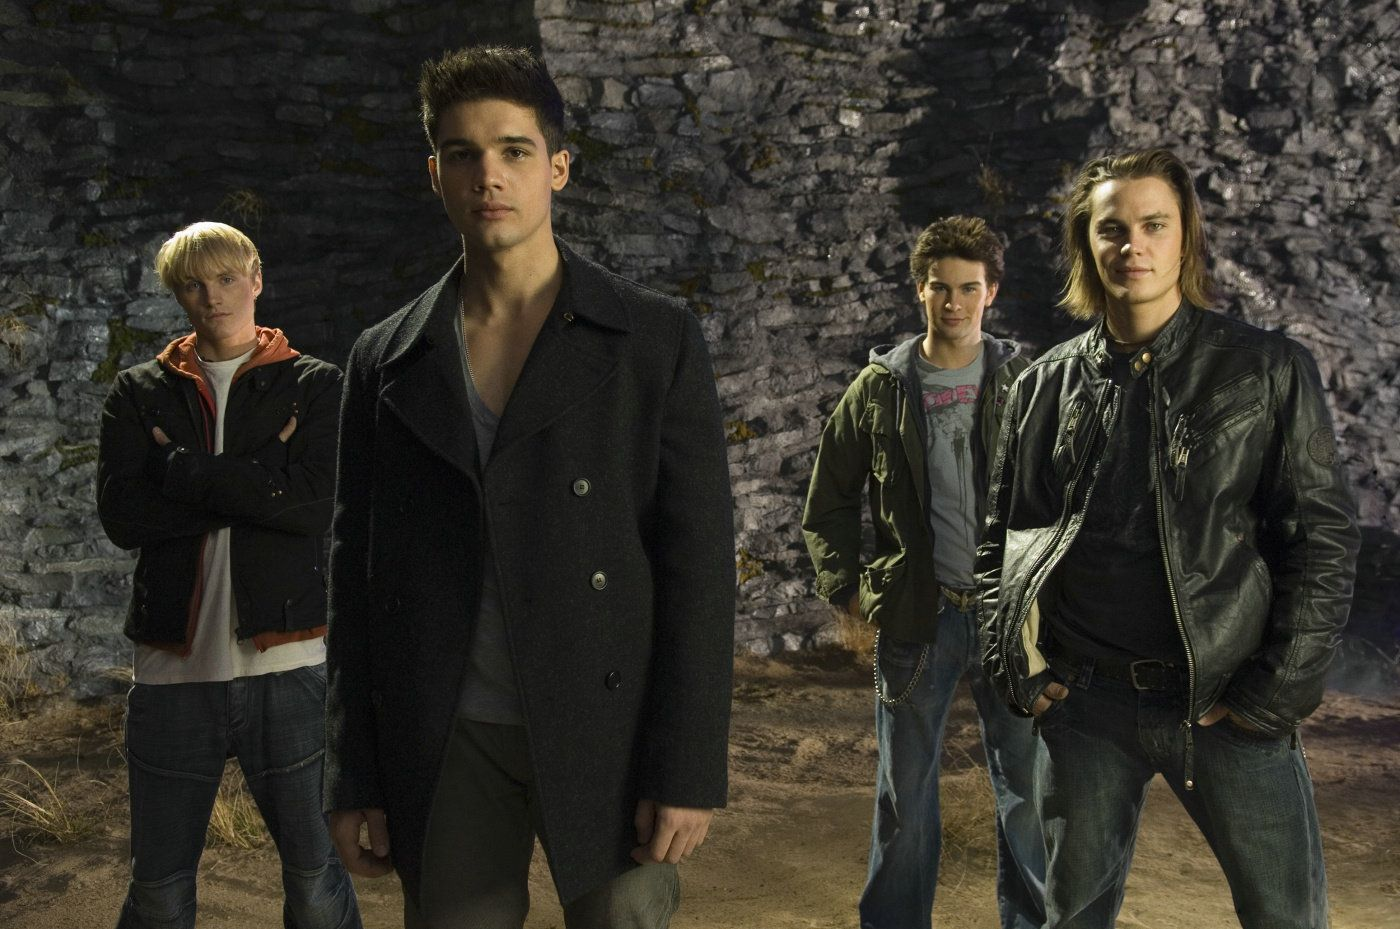 The Sons of Ipswich - (l to r) Toby Hemingway, Steve Strait, Chace Crawford and Taylor Kitsch in The Covenant (2006)